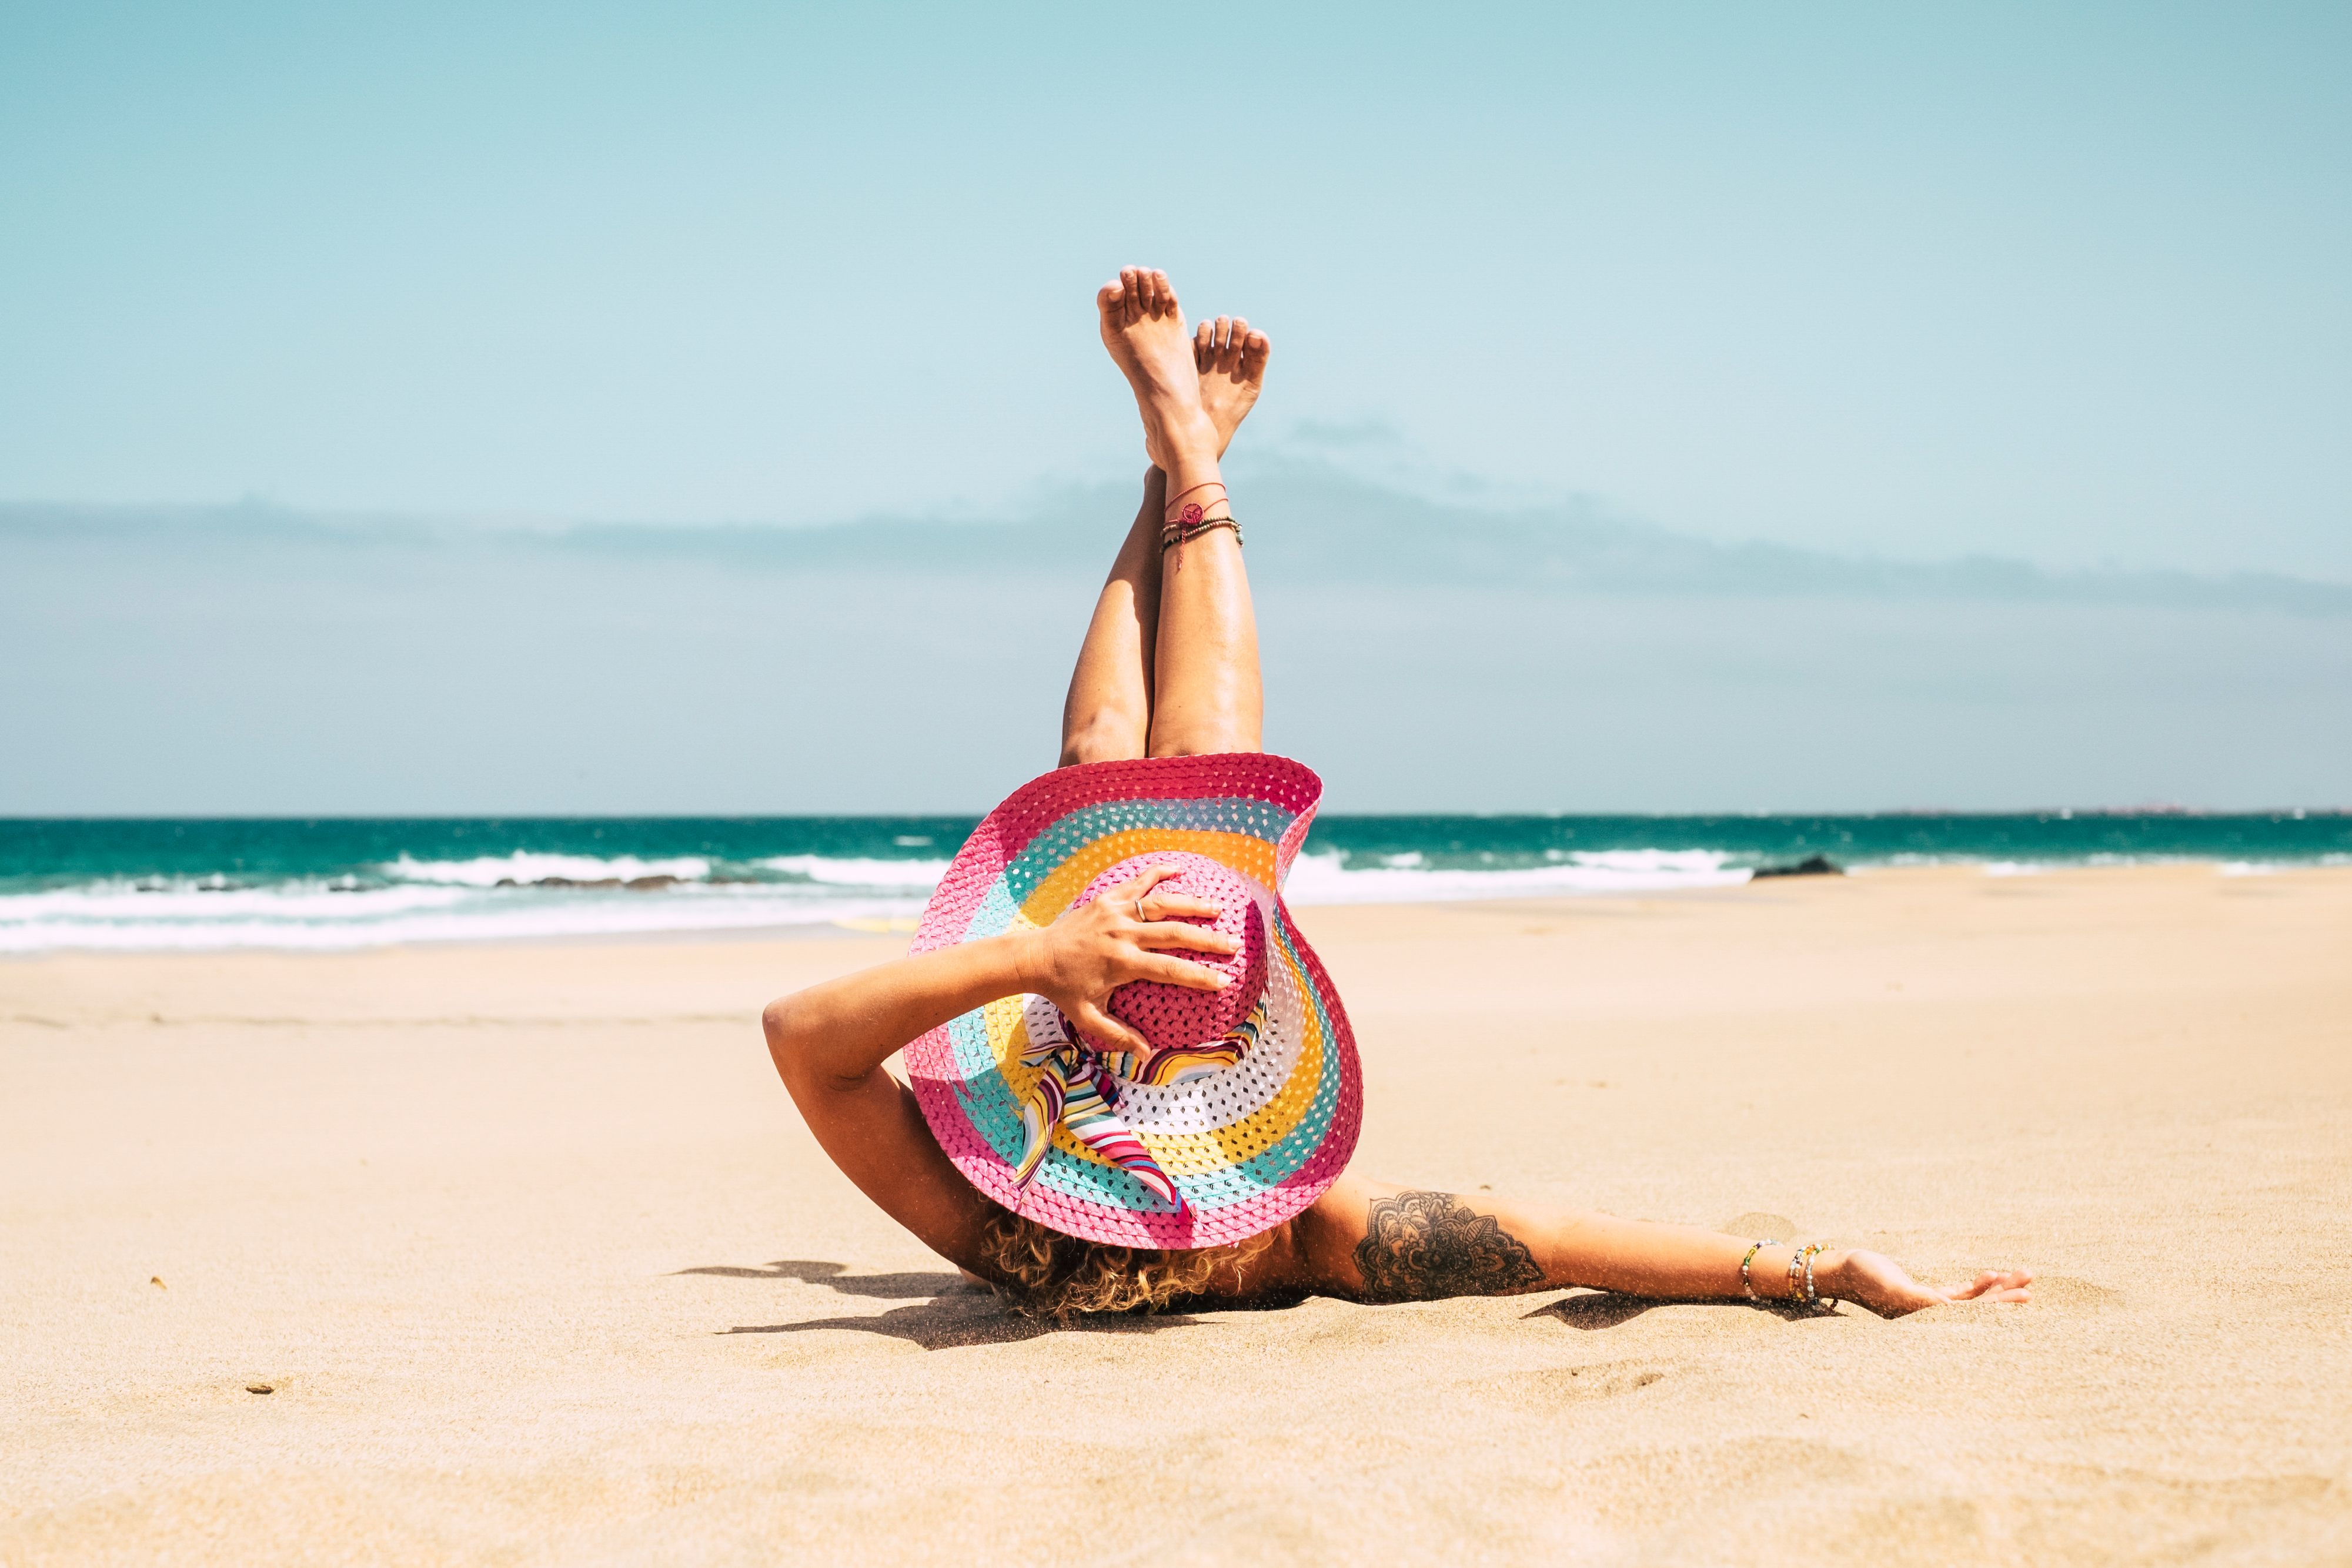 woman-with-colorful-hat-enjoy-the-beach-laying-on--CNK7TDX.jpg